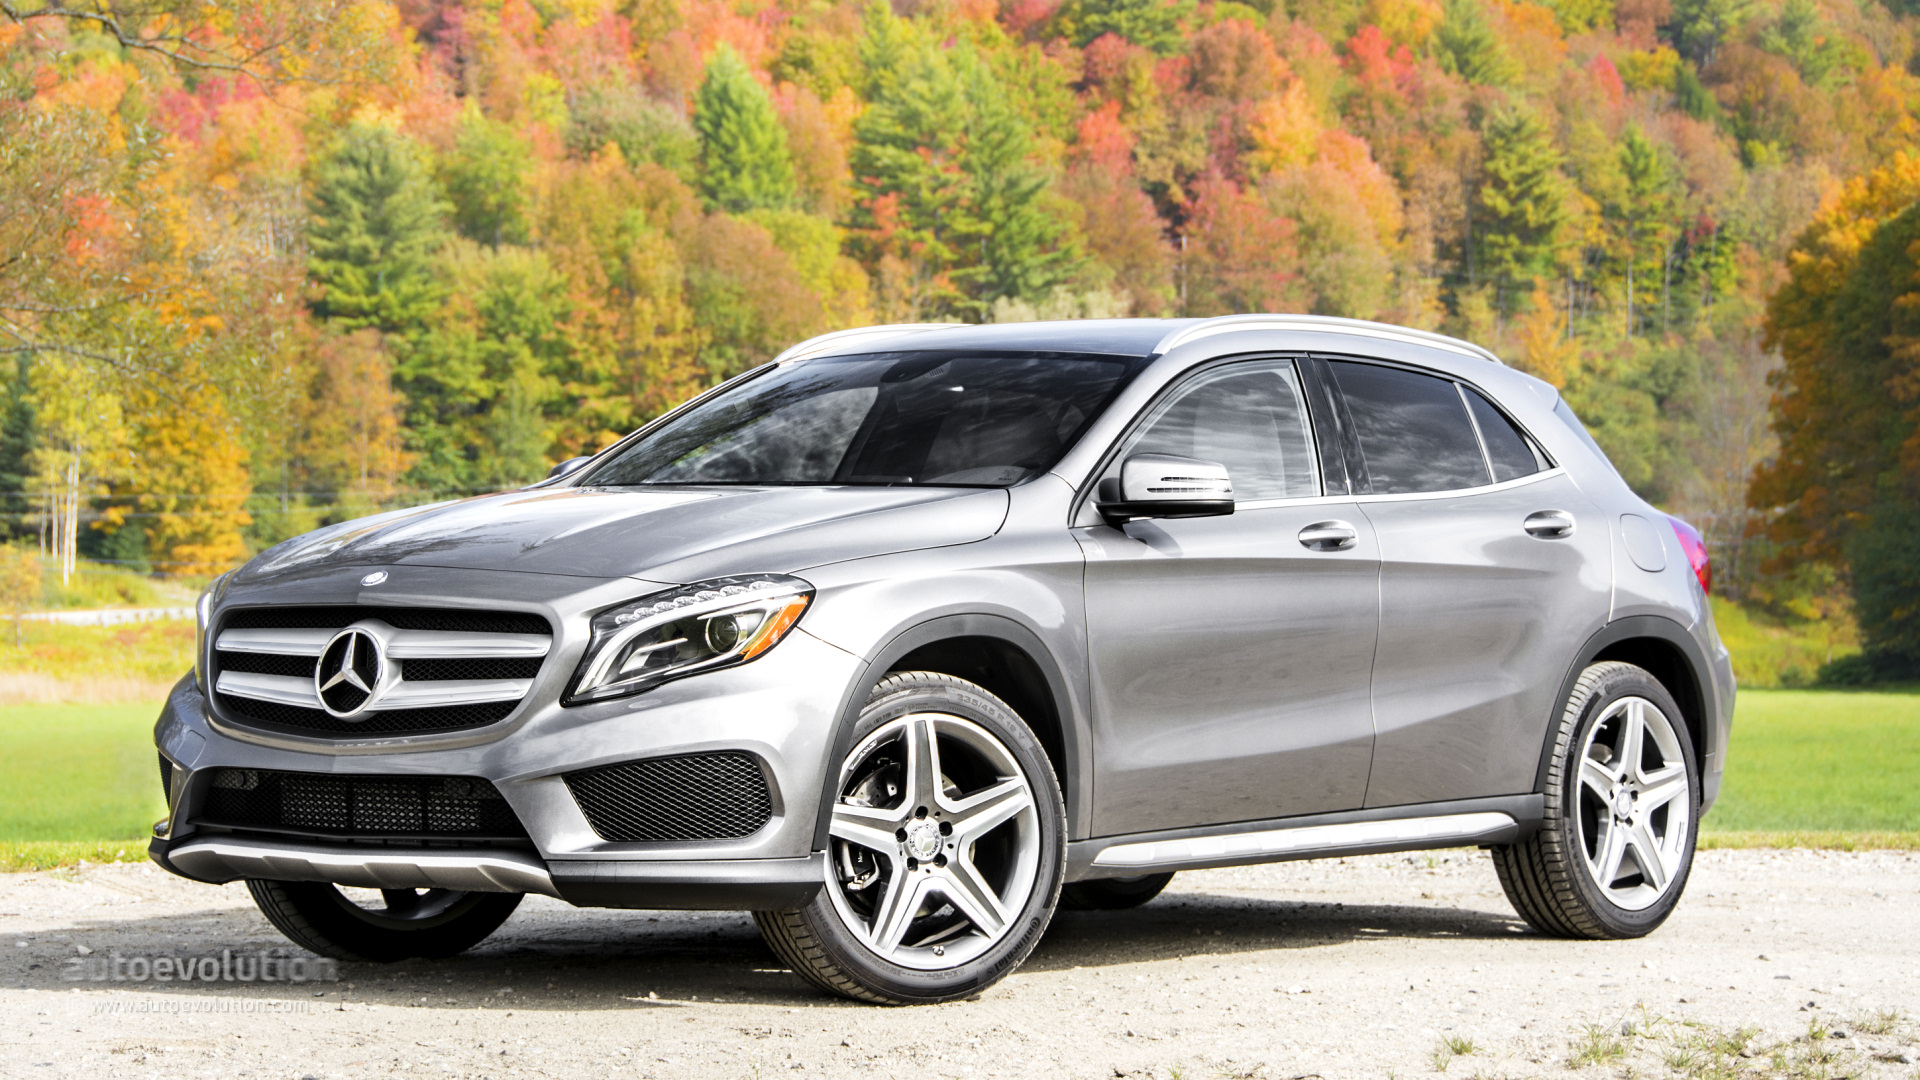 2015 mercedes benz gla250 4matic hd wallpapers autoevolution